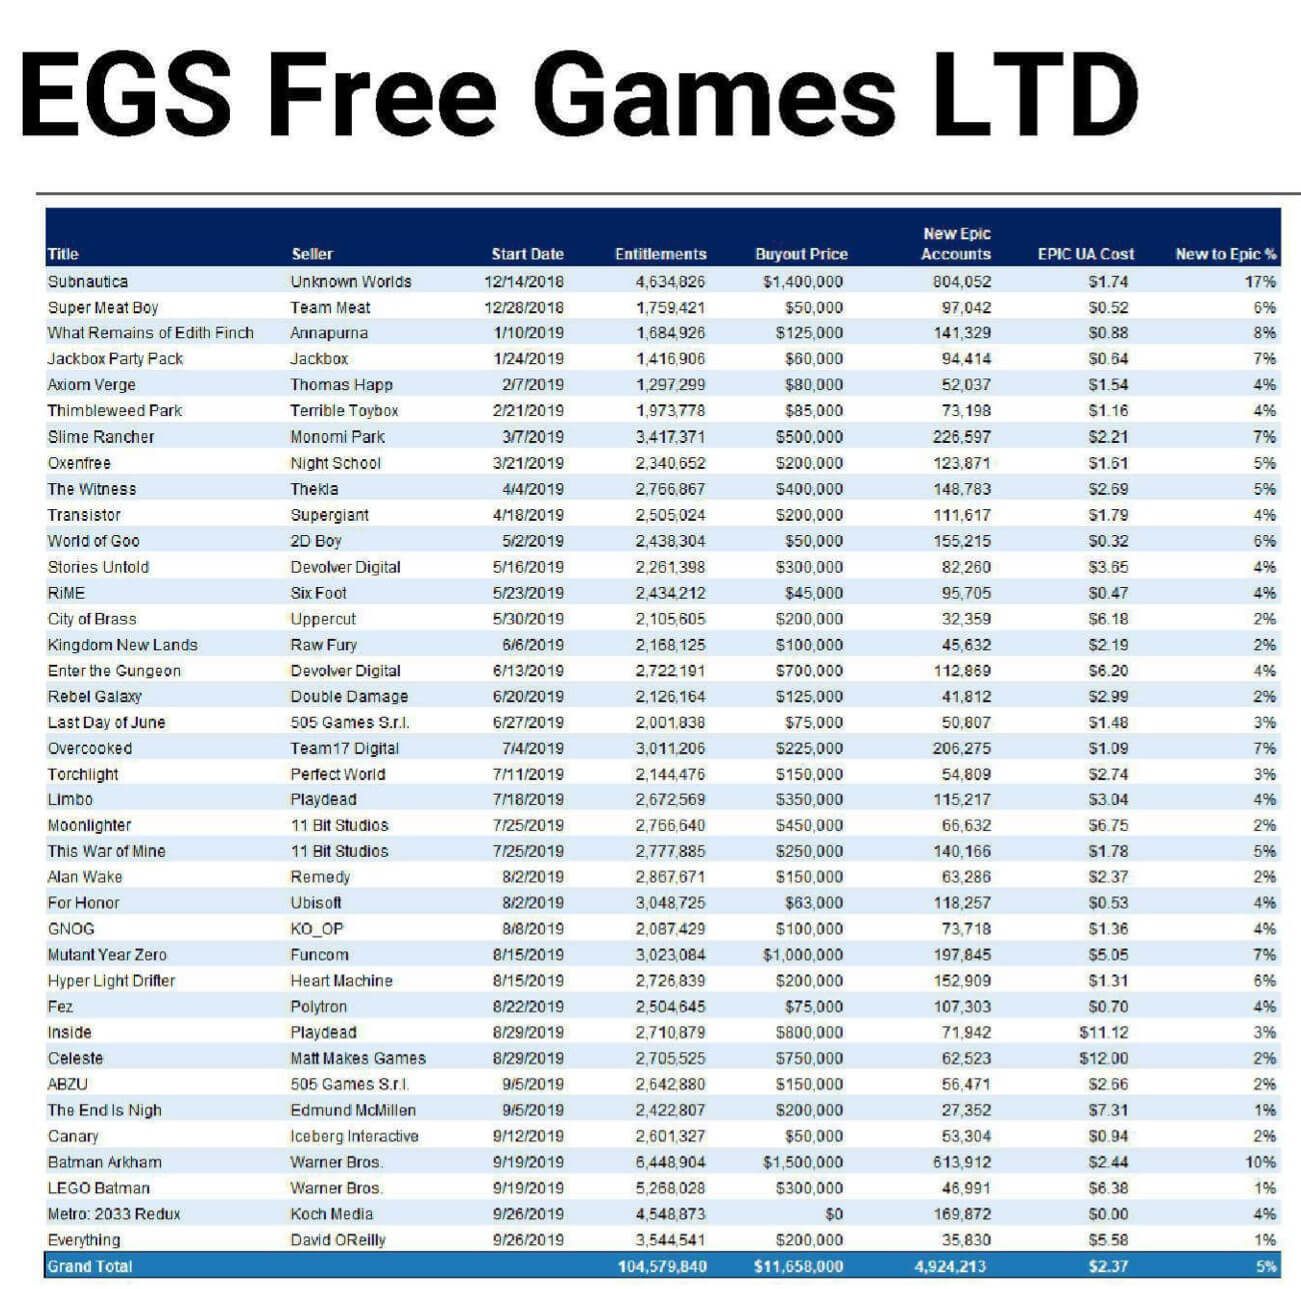 EGS free games deals